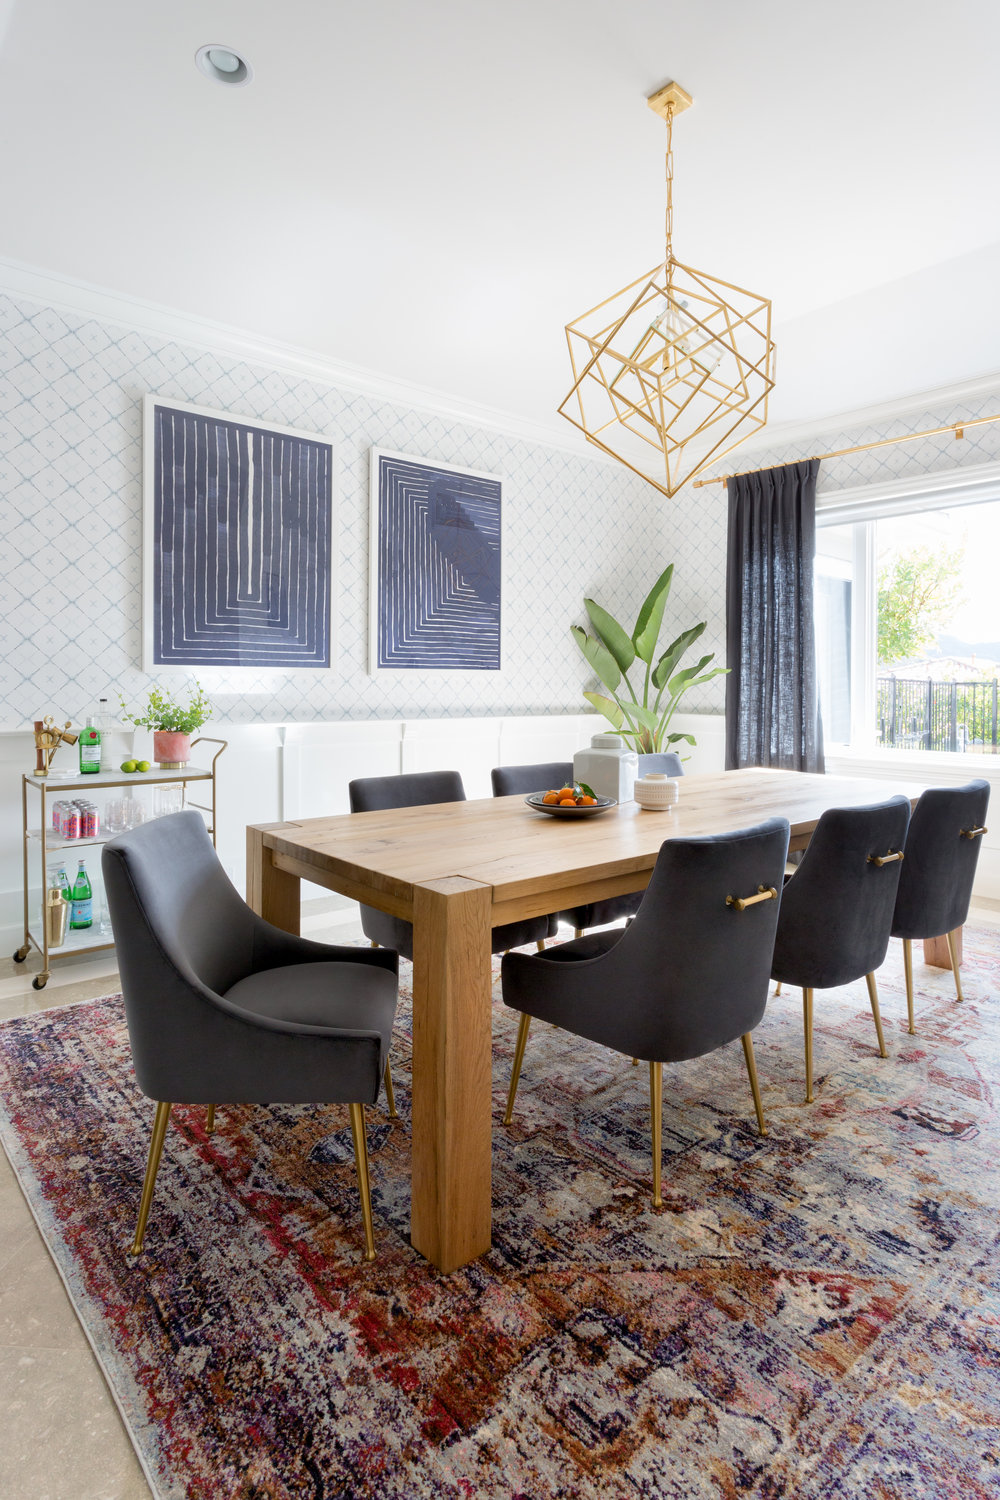 Cozy Mid Century Modern Dining Room | Lake Sherwood Project by Lindsey Brooke Design3.jpg